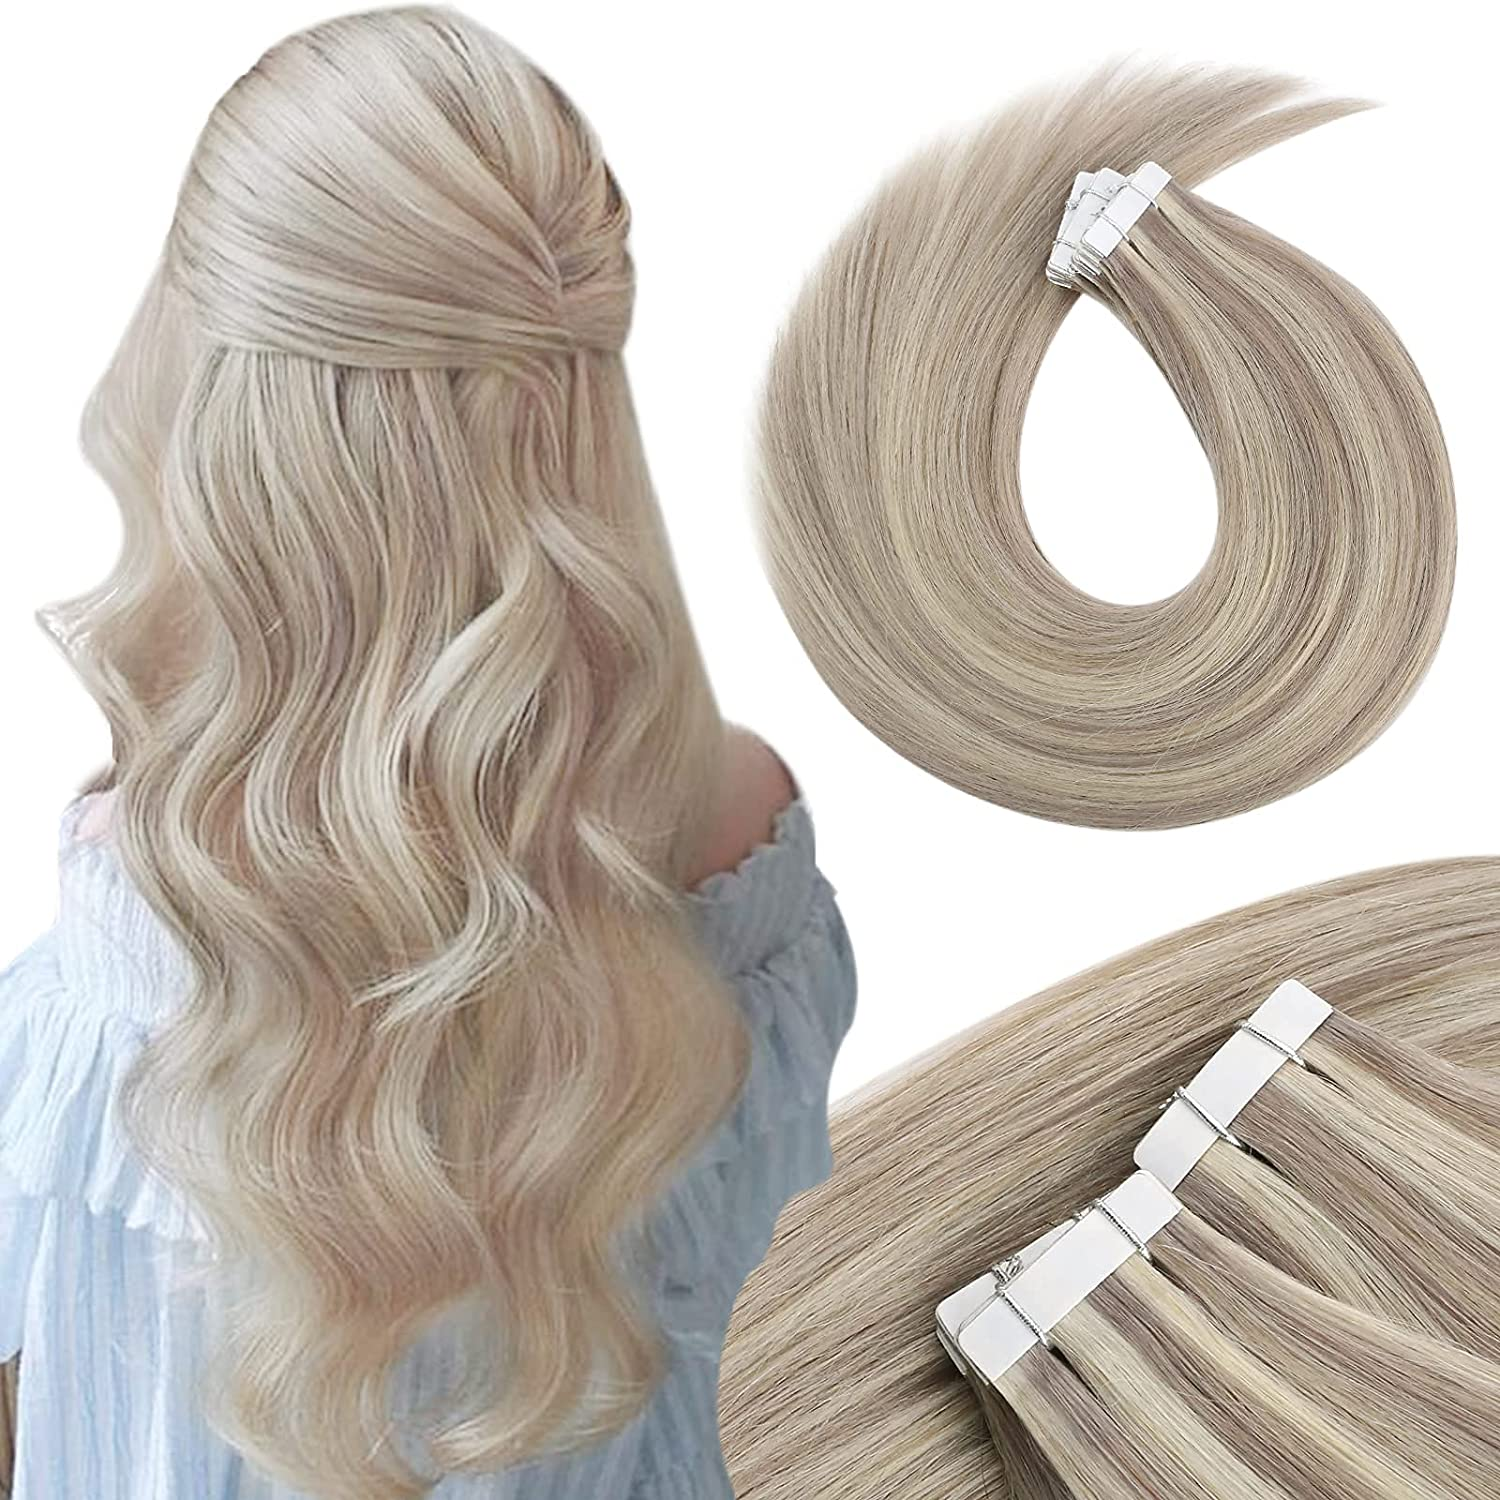 VeSunny Tape OFFicial mail order in Hair Extensions 1 year warranty Highlight Platinum 22inch Blonde